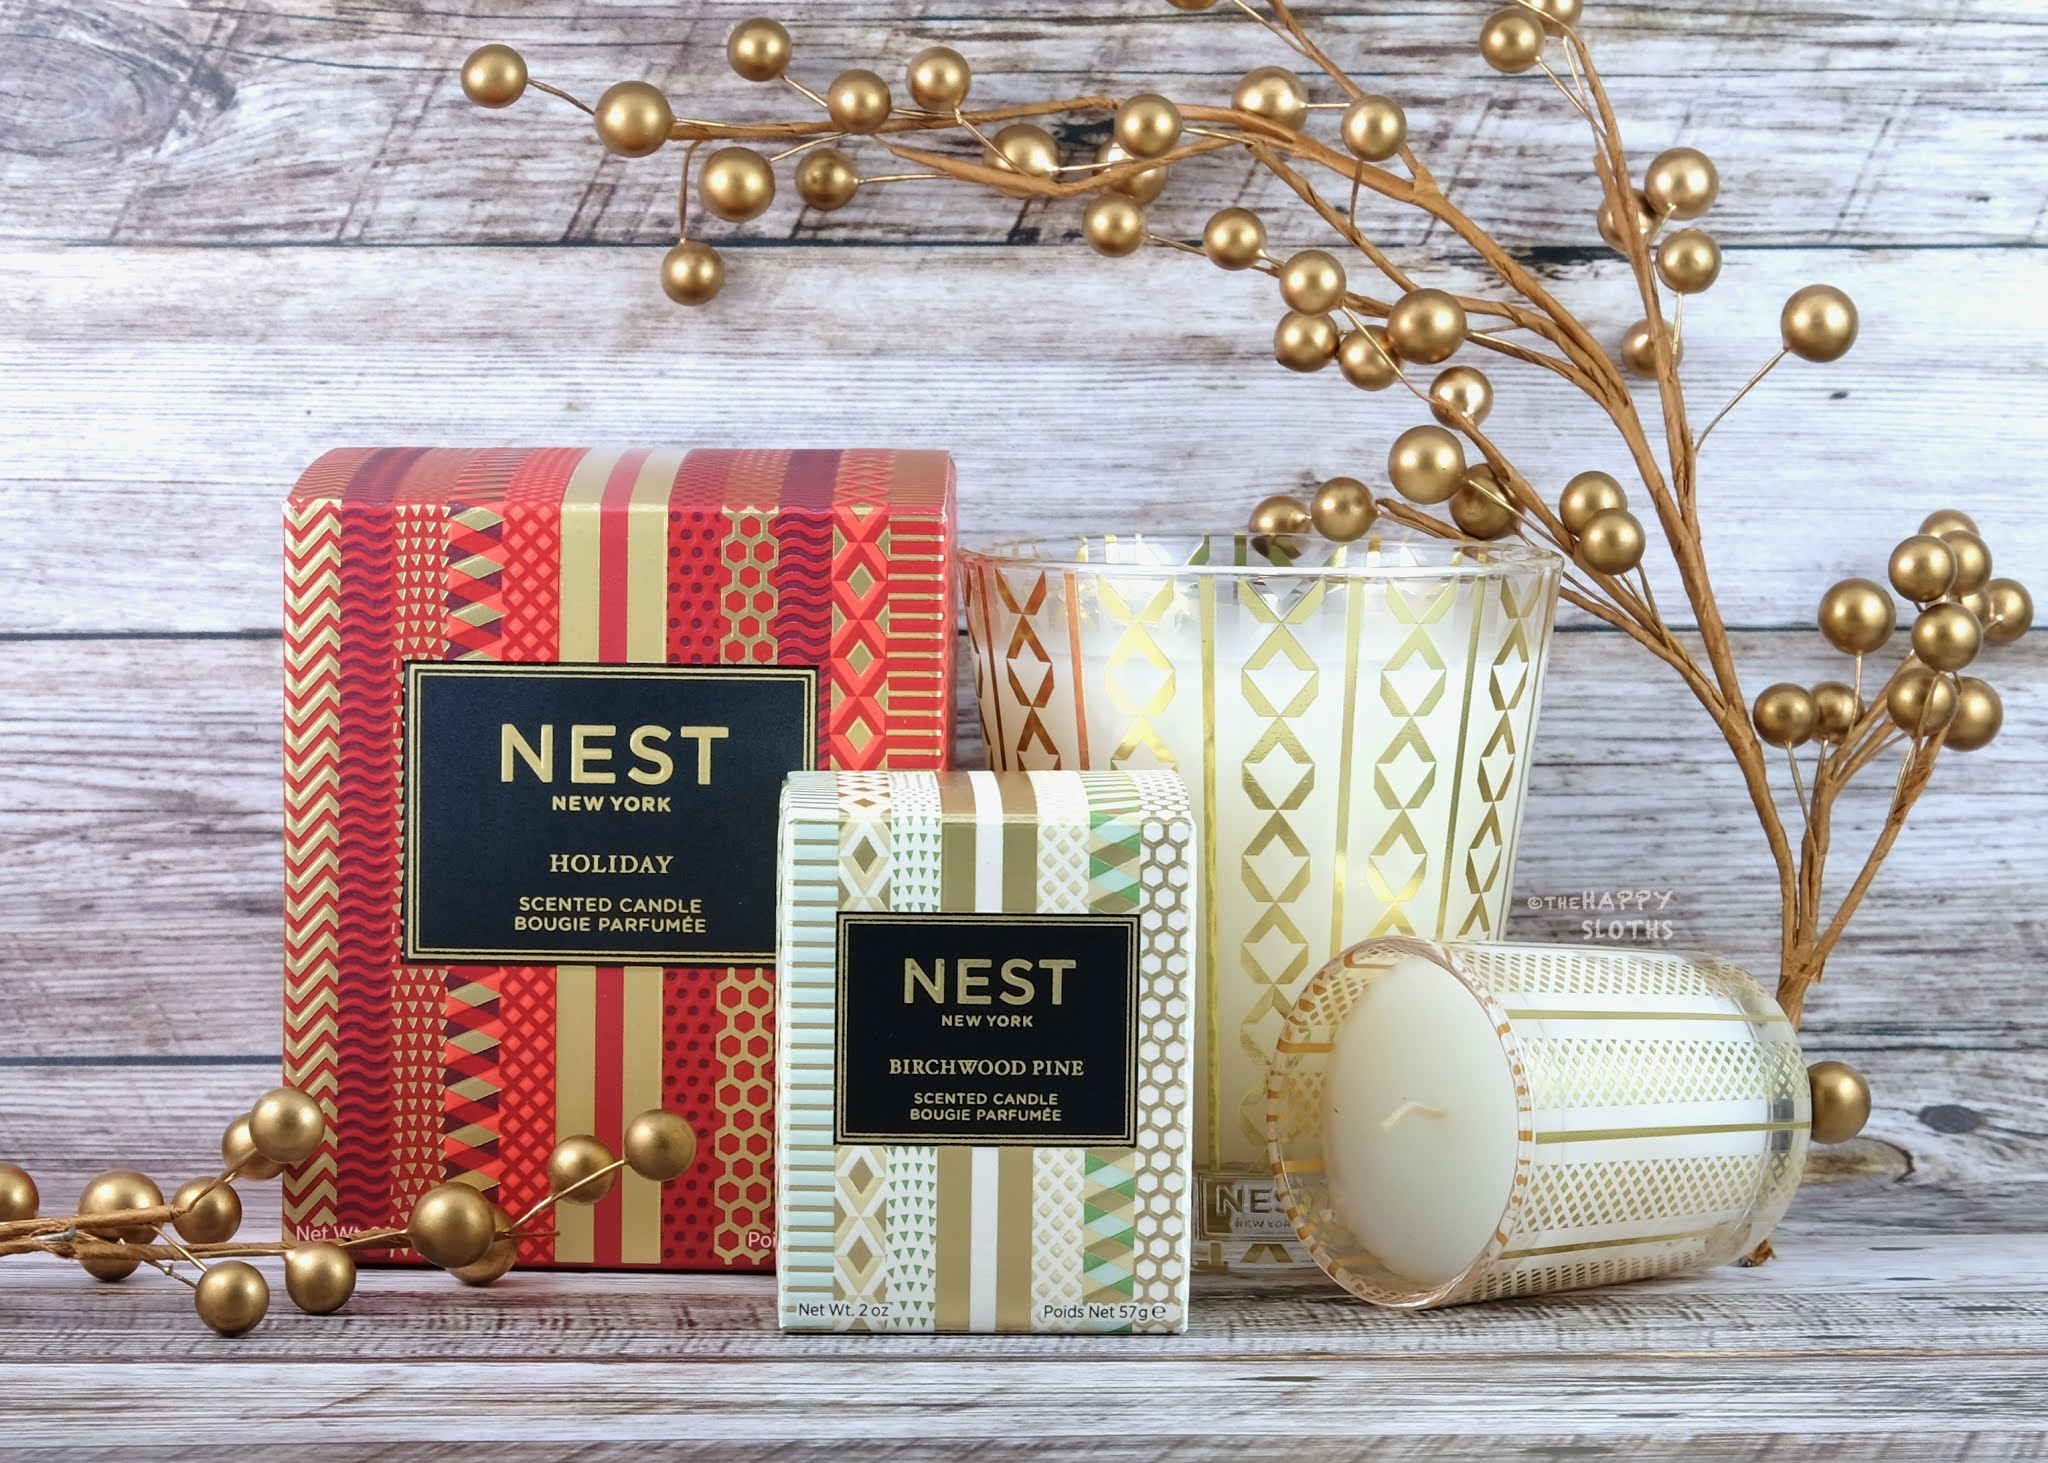 NEST New York | Holiday 2020 Holiday Candle & Birchwood Pine Candle: Review